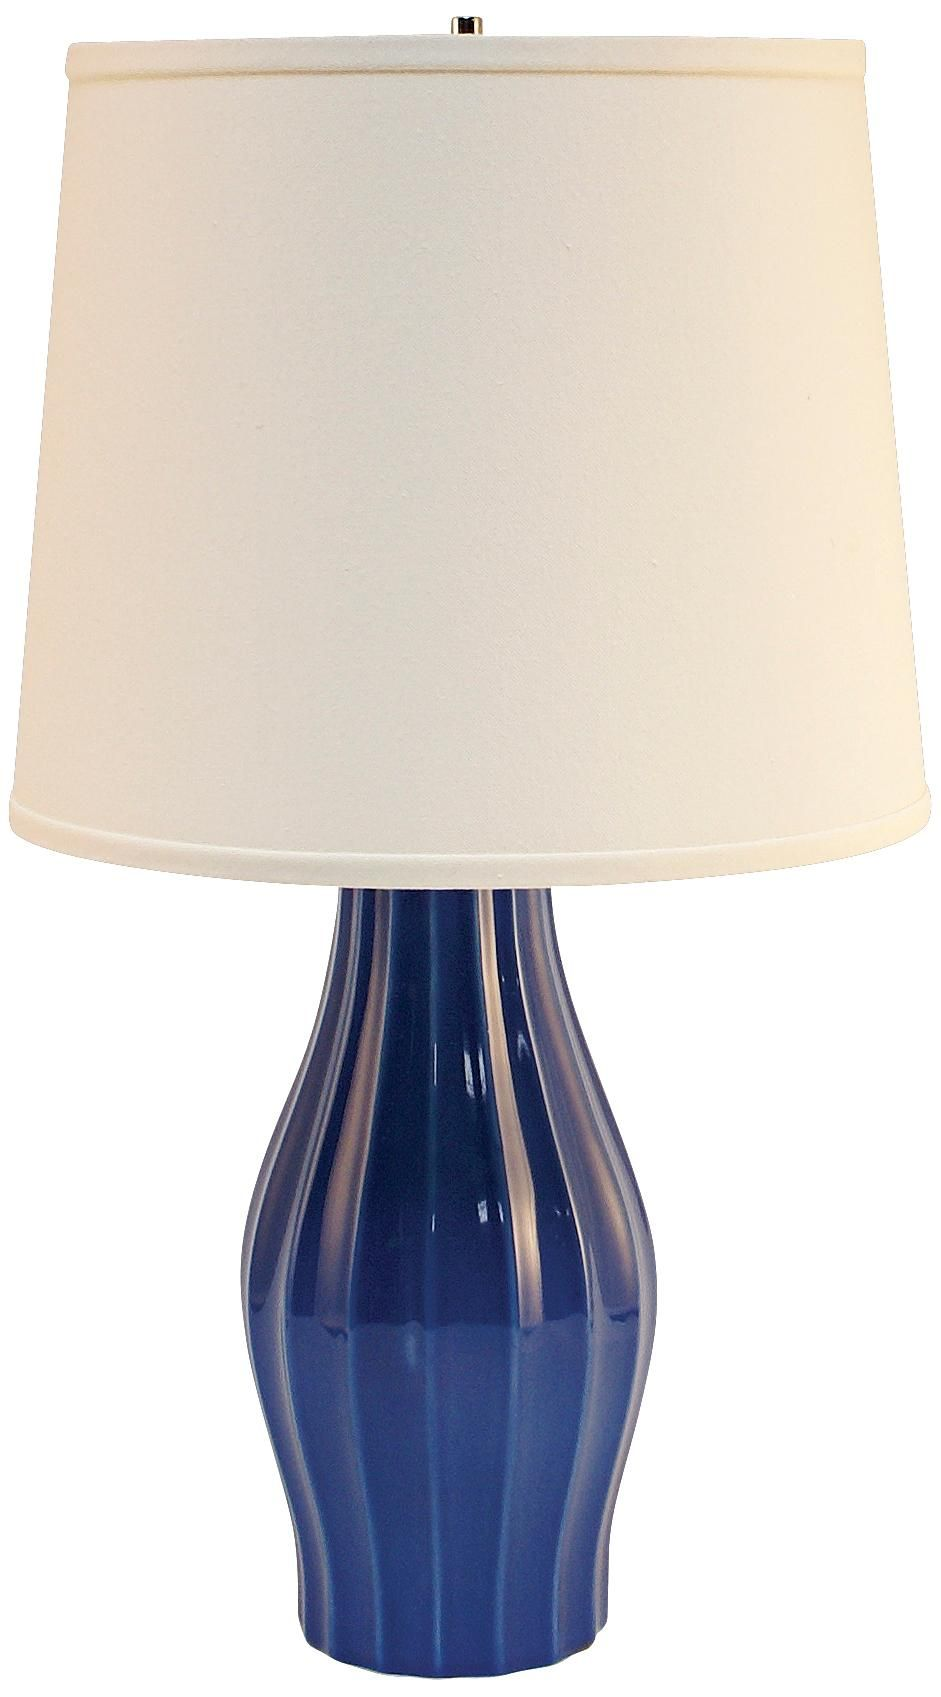 Haeger Potteries Blue Fluted Ceramictable Lamp P2035 Lamps Plus Lamp Ceramic Decor Traditional Table Lamps